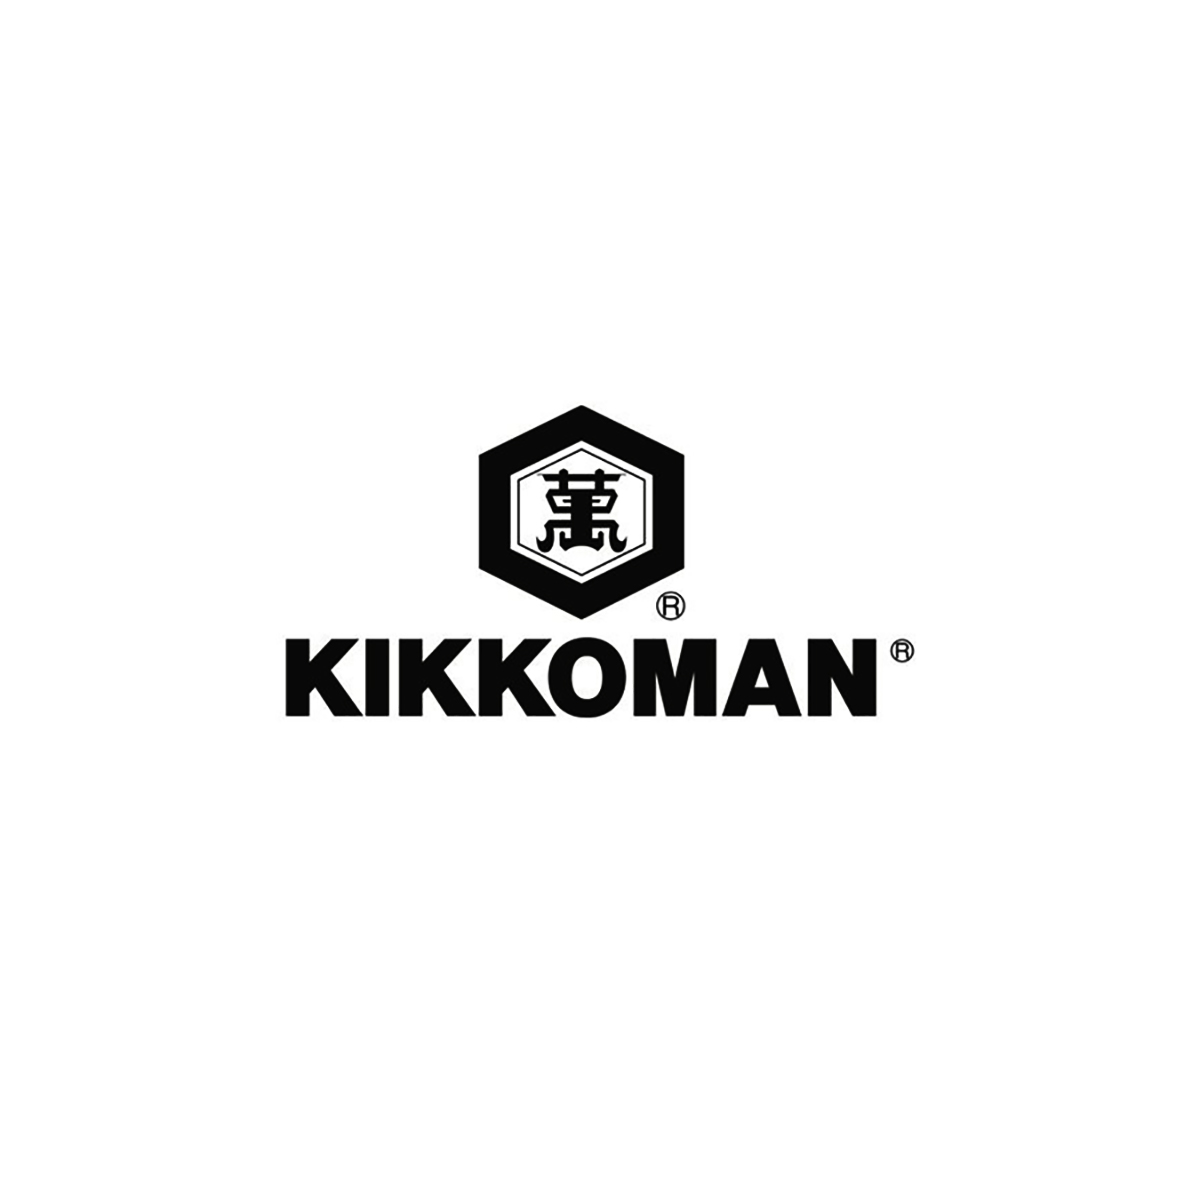 Kikkoman